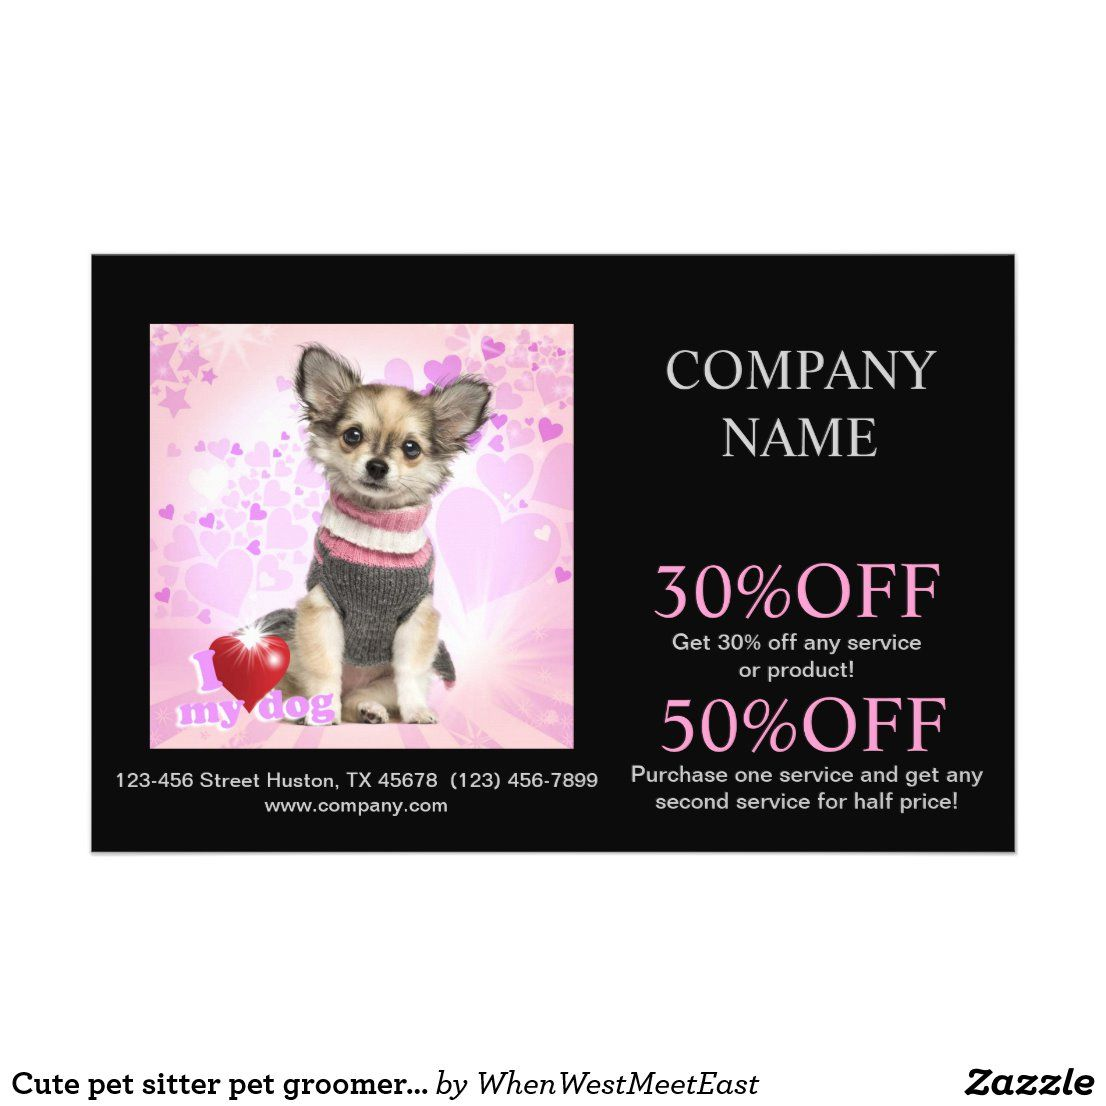 Cute Pet Sitter Pet Groomer Dog Daycare Flyer Zazzle Com In 2020 Pet Sitters Pet Groomers Dog Daycare